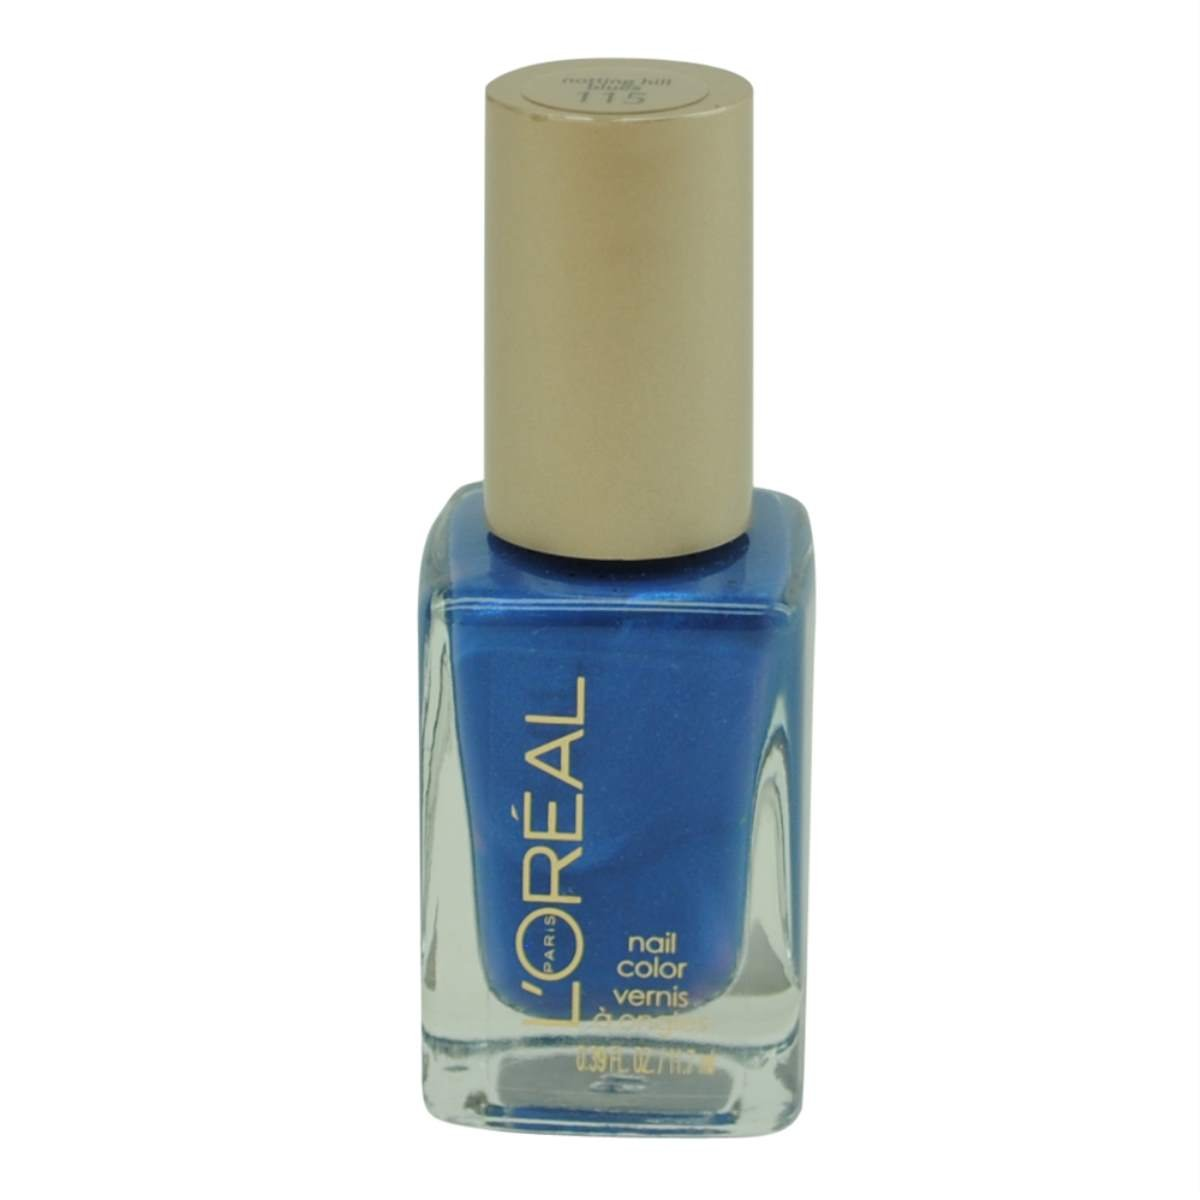 L'OREAL NAIL COLOR #115 NOTHING HILL BLUES B008WF2WHO